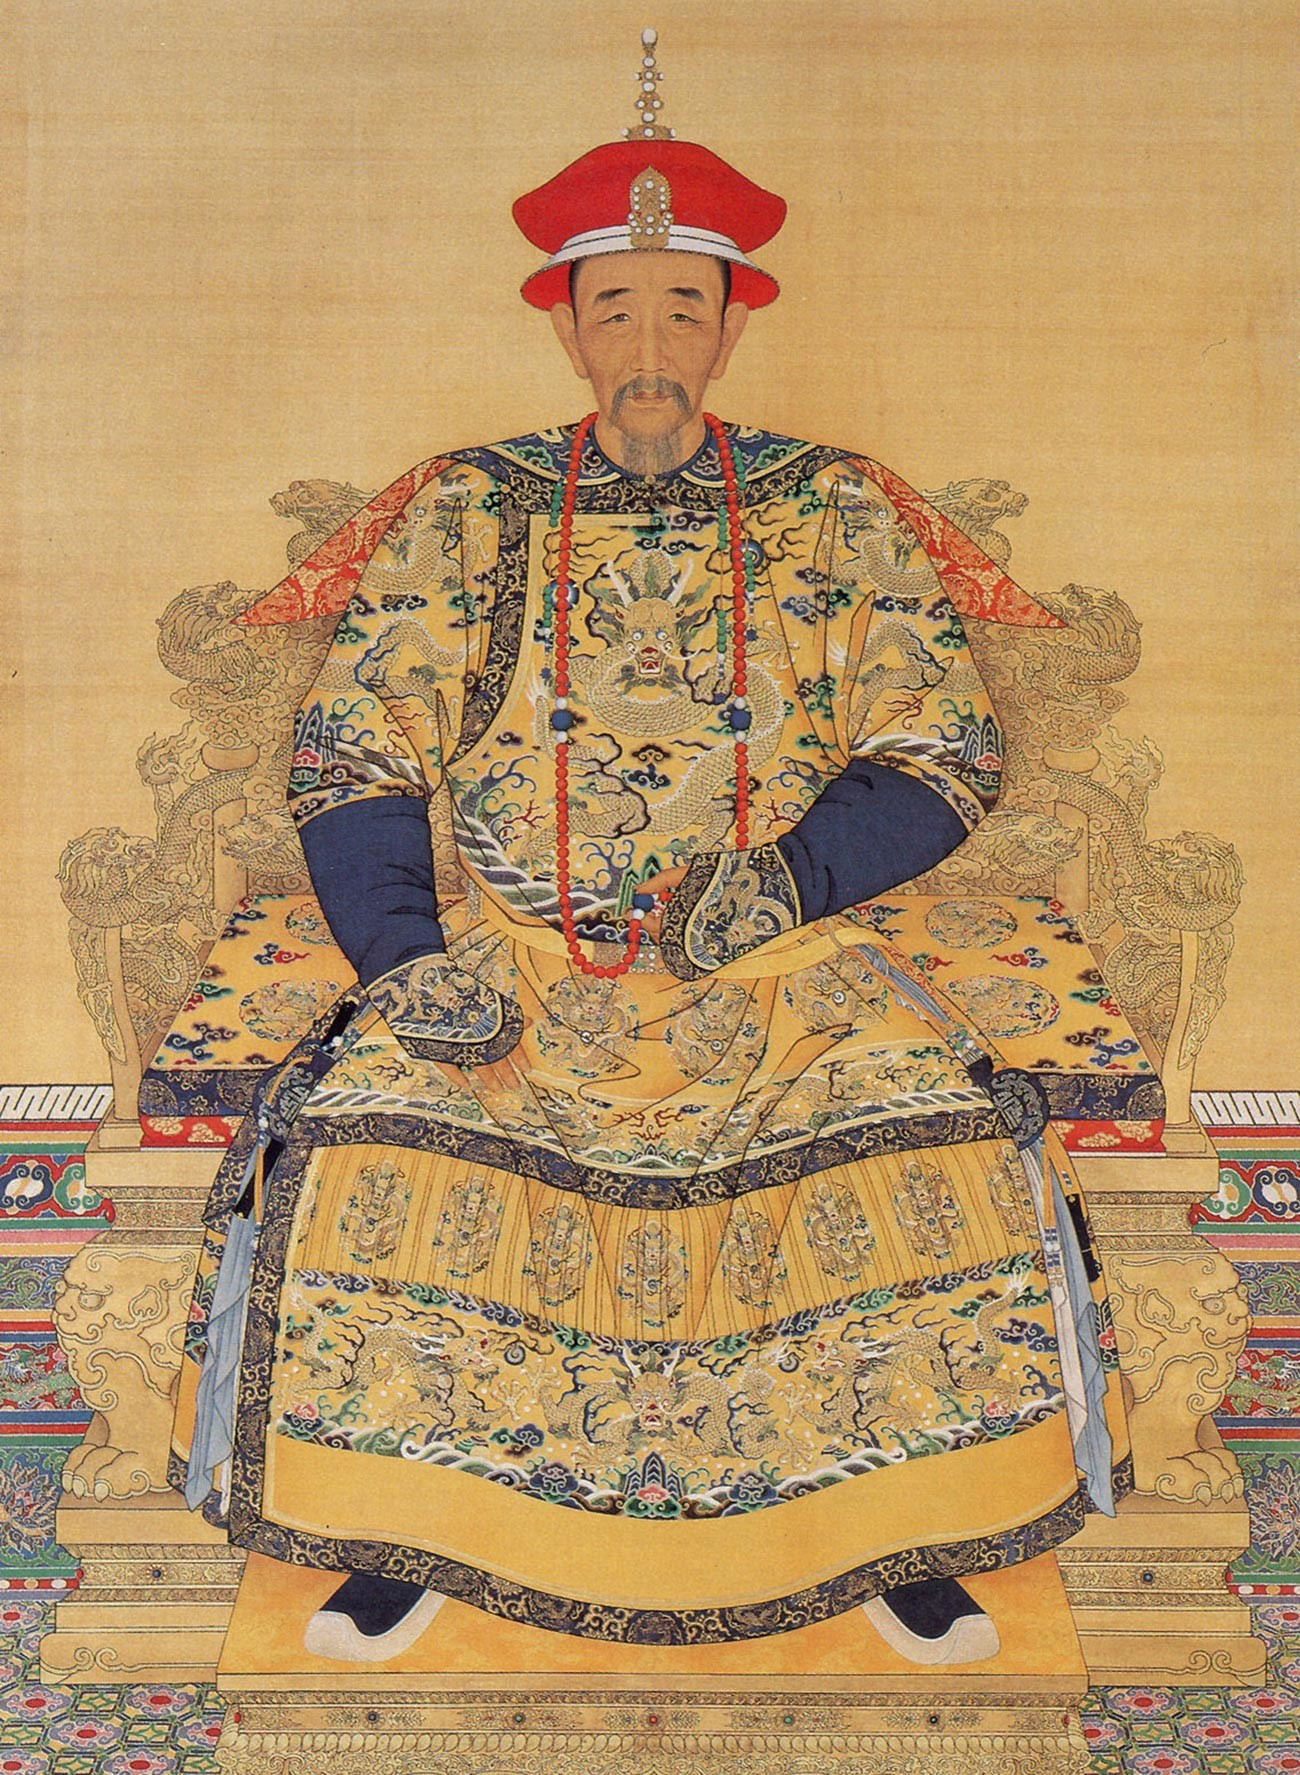 Kangxi Emperor, the fourth Emperor of the Qing dynasty.